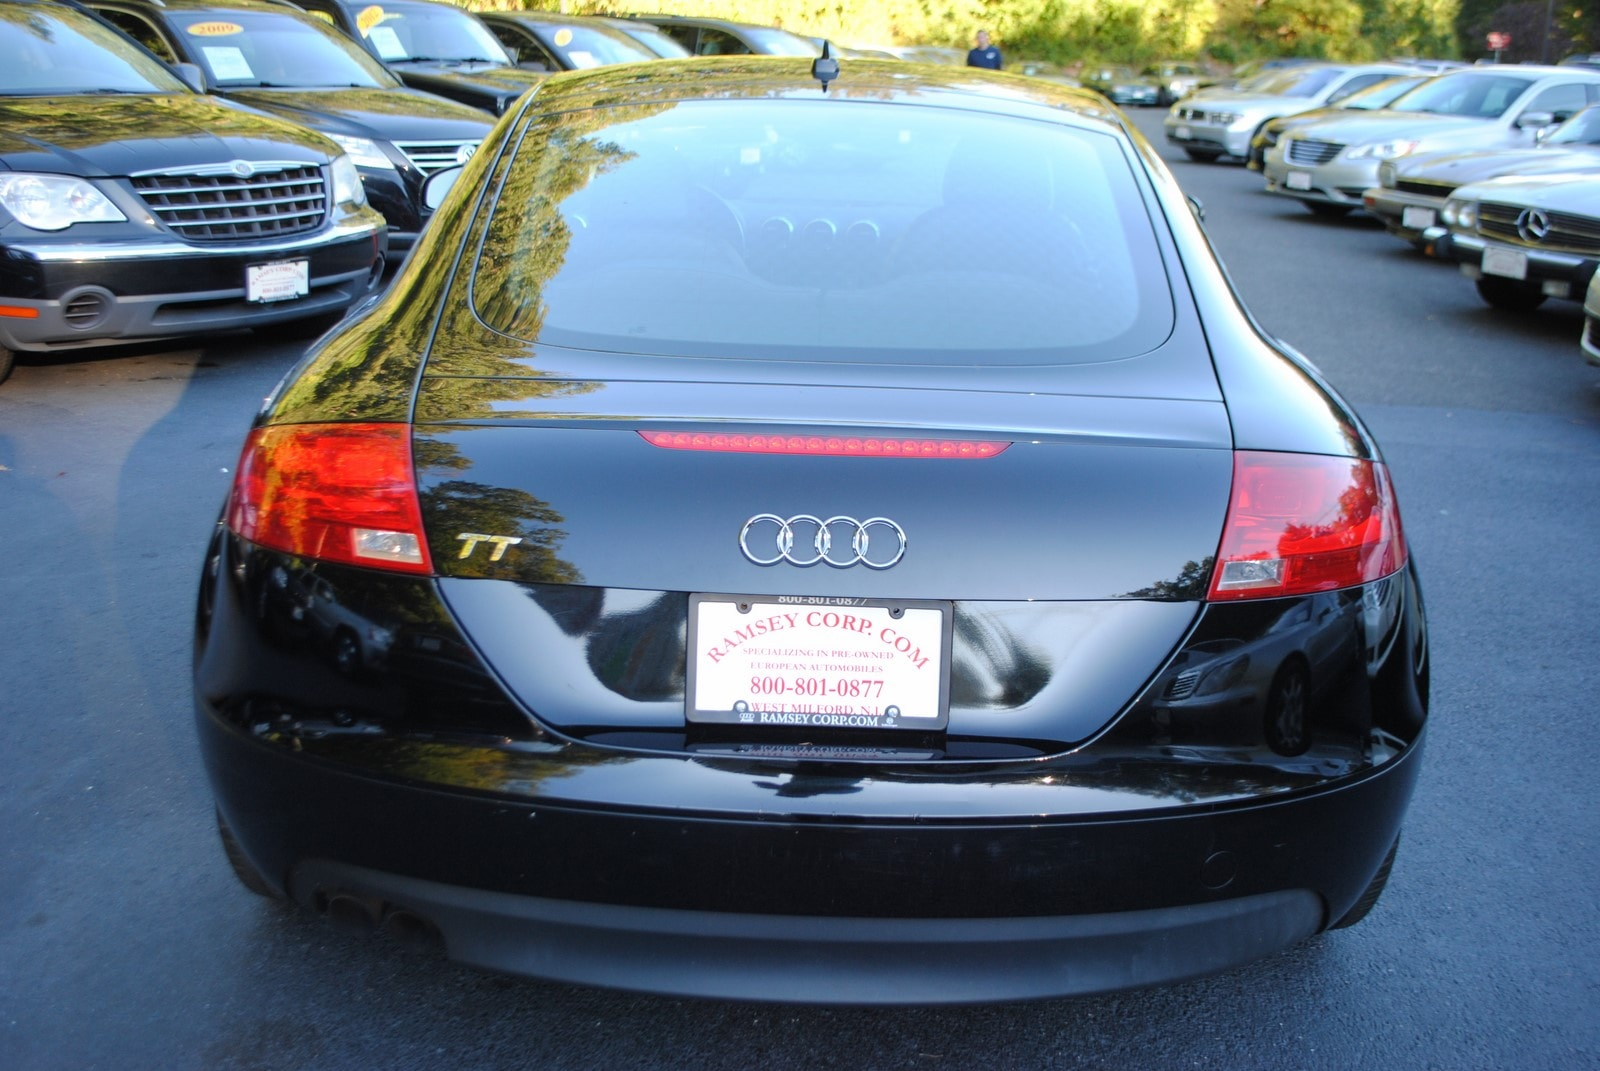 Used 2008 Audi TT For Sale at Ramsey Corp  | VIN: TRUAF38J981000656